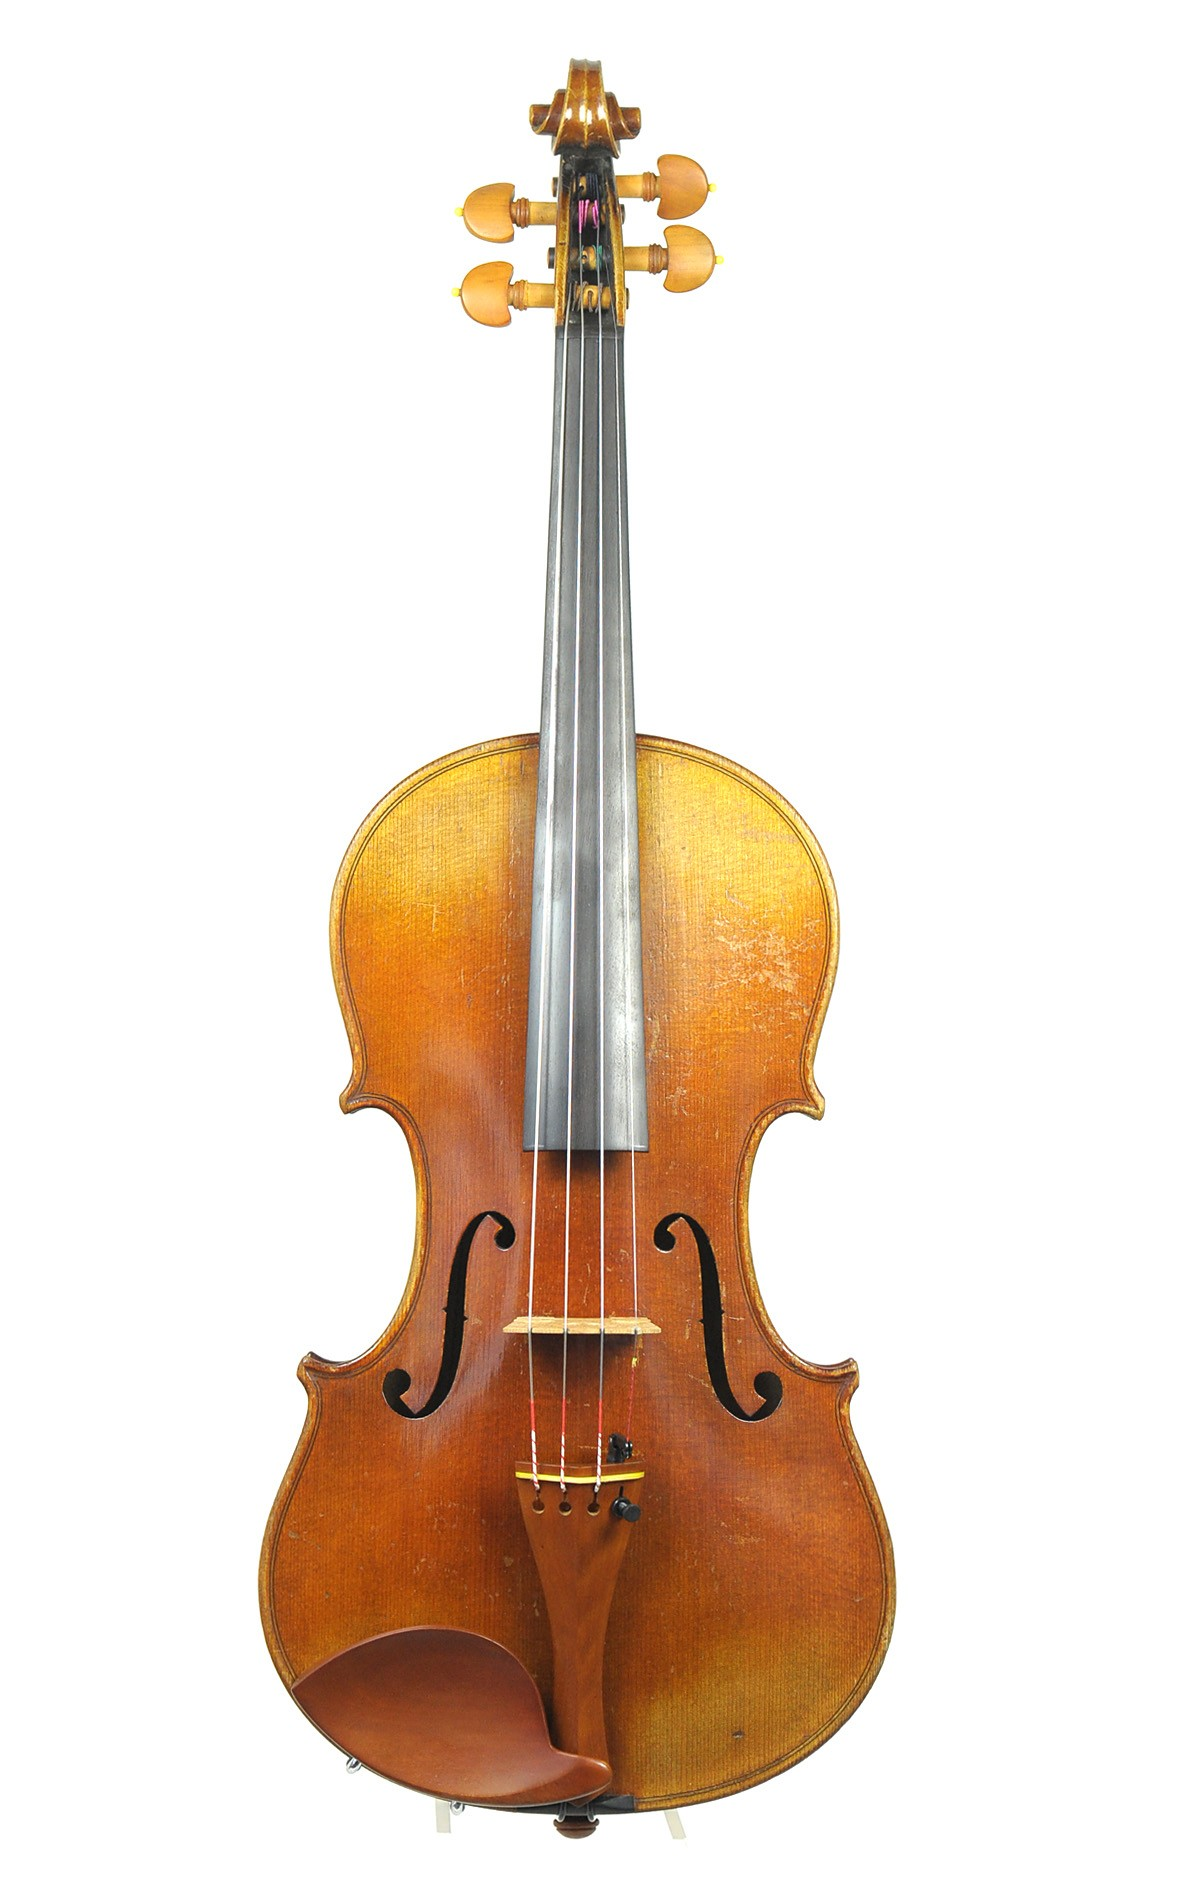 Fine quality Markneukirchen violin from Schuster & Co., 1912 - table